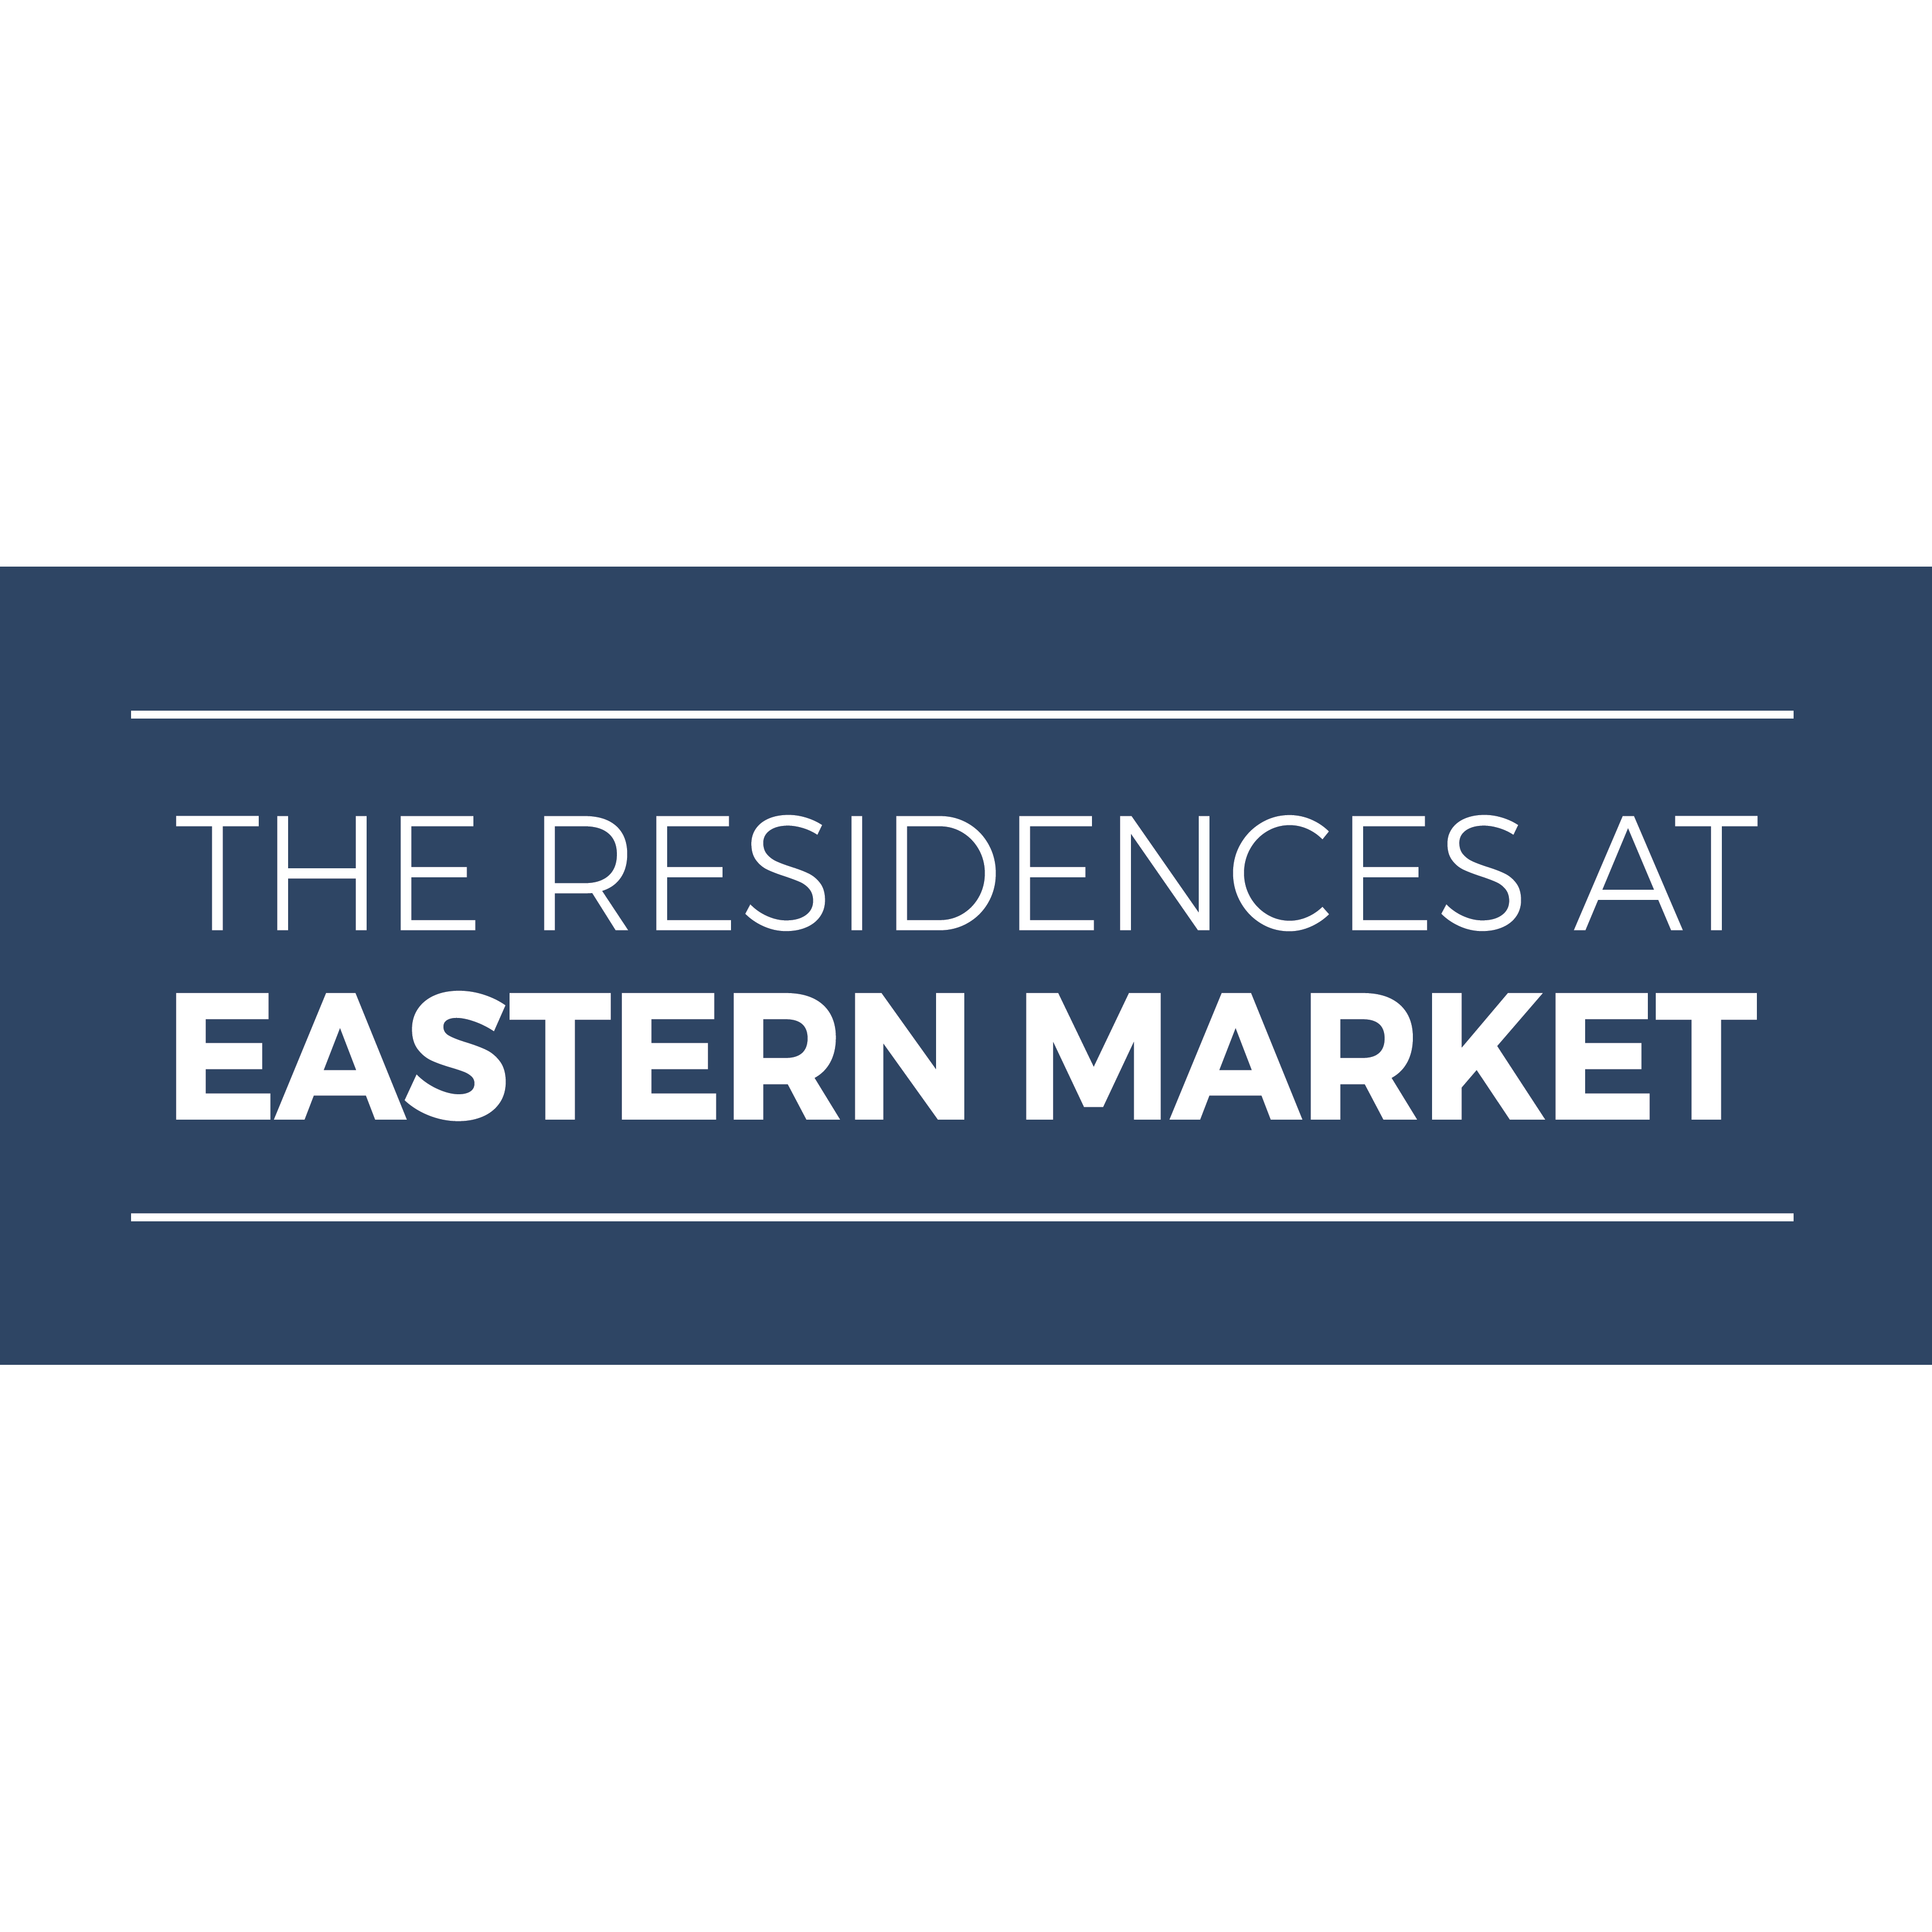 The Residences at Eastern Market